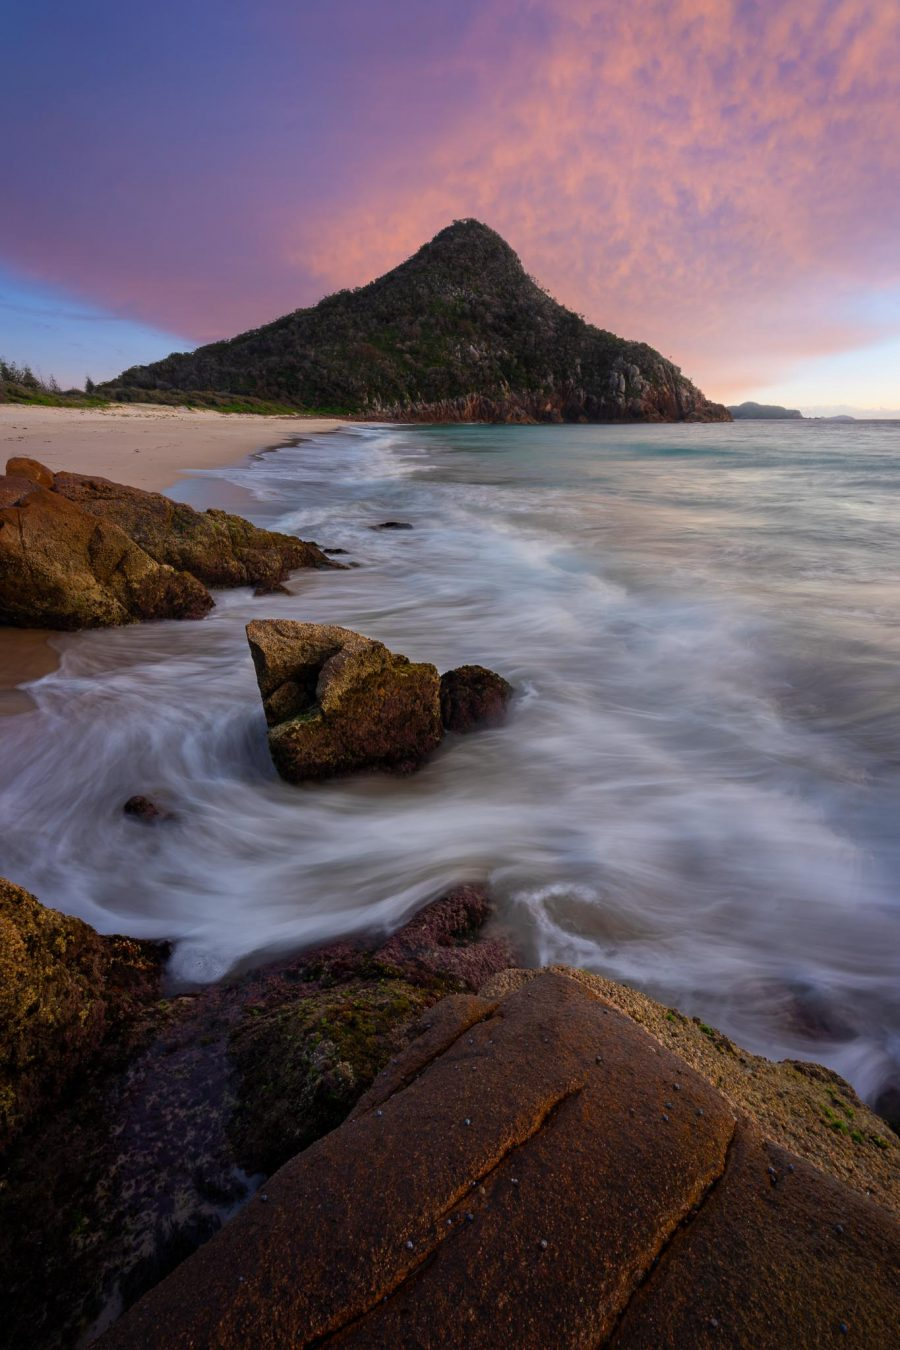 View of Tomaree Mountain from Zenith Beach at sunrise, Port Stephens, NSW, Australia.